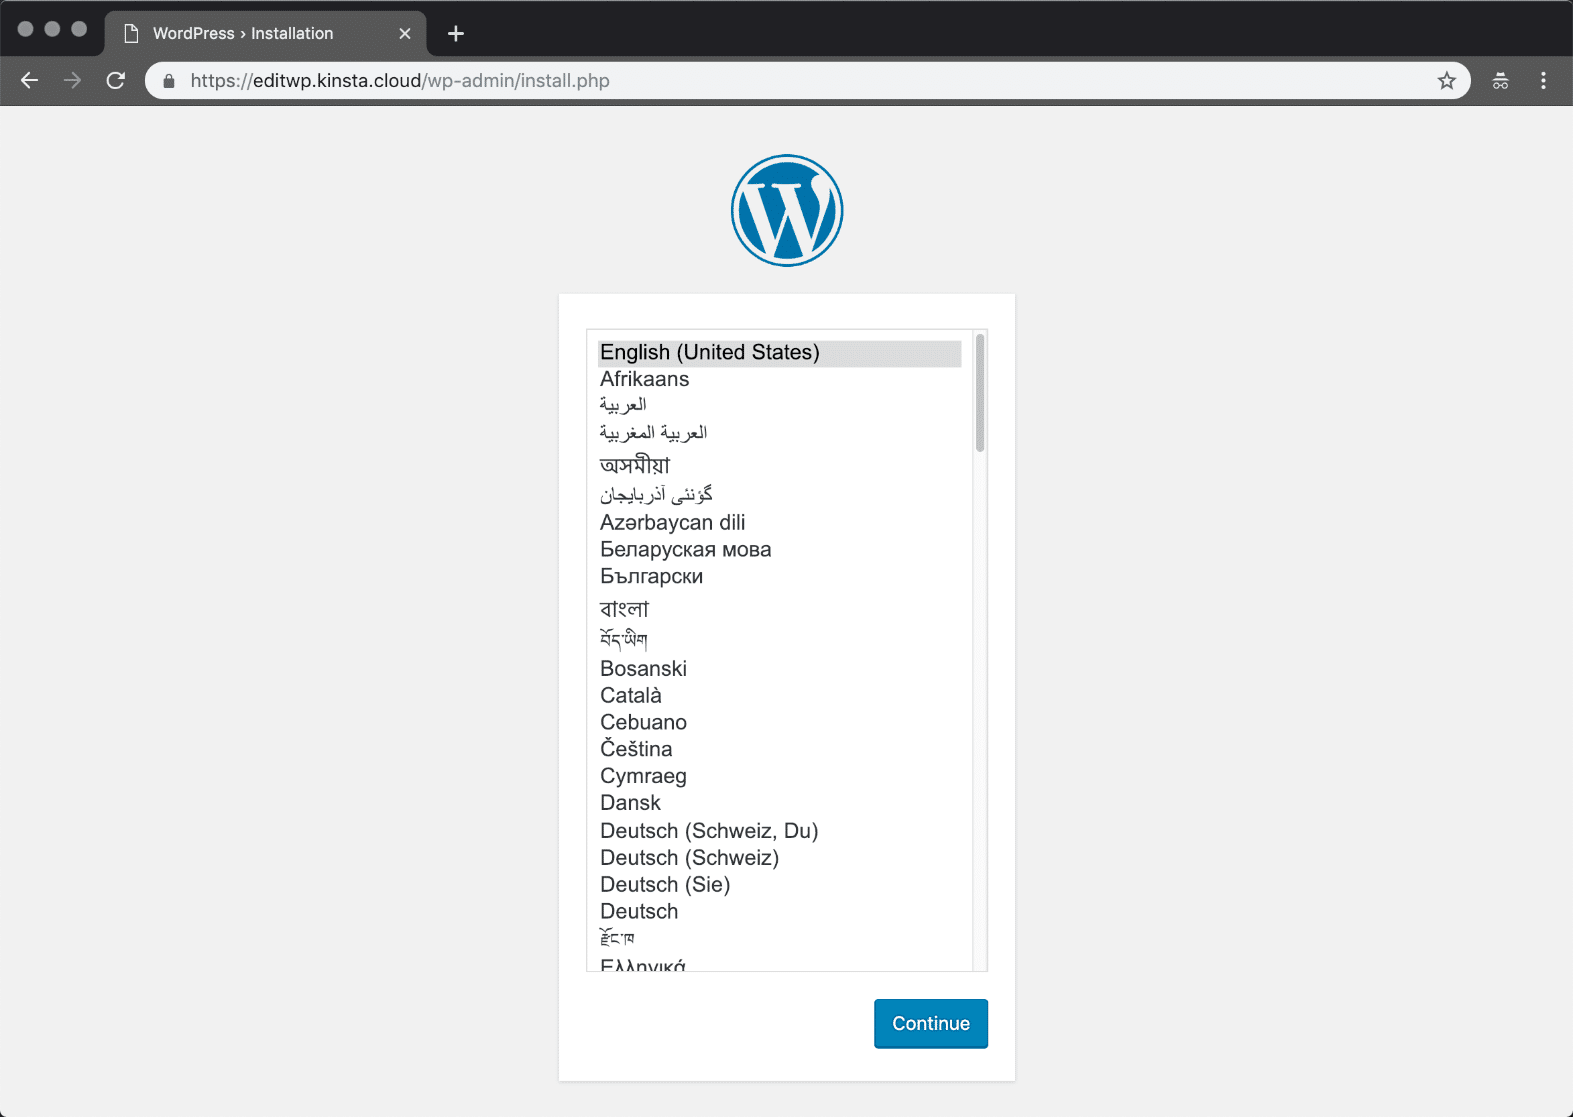 WordPress install language